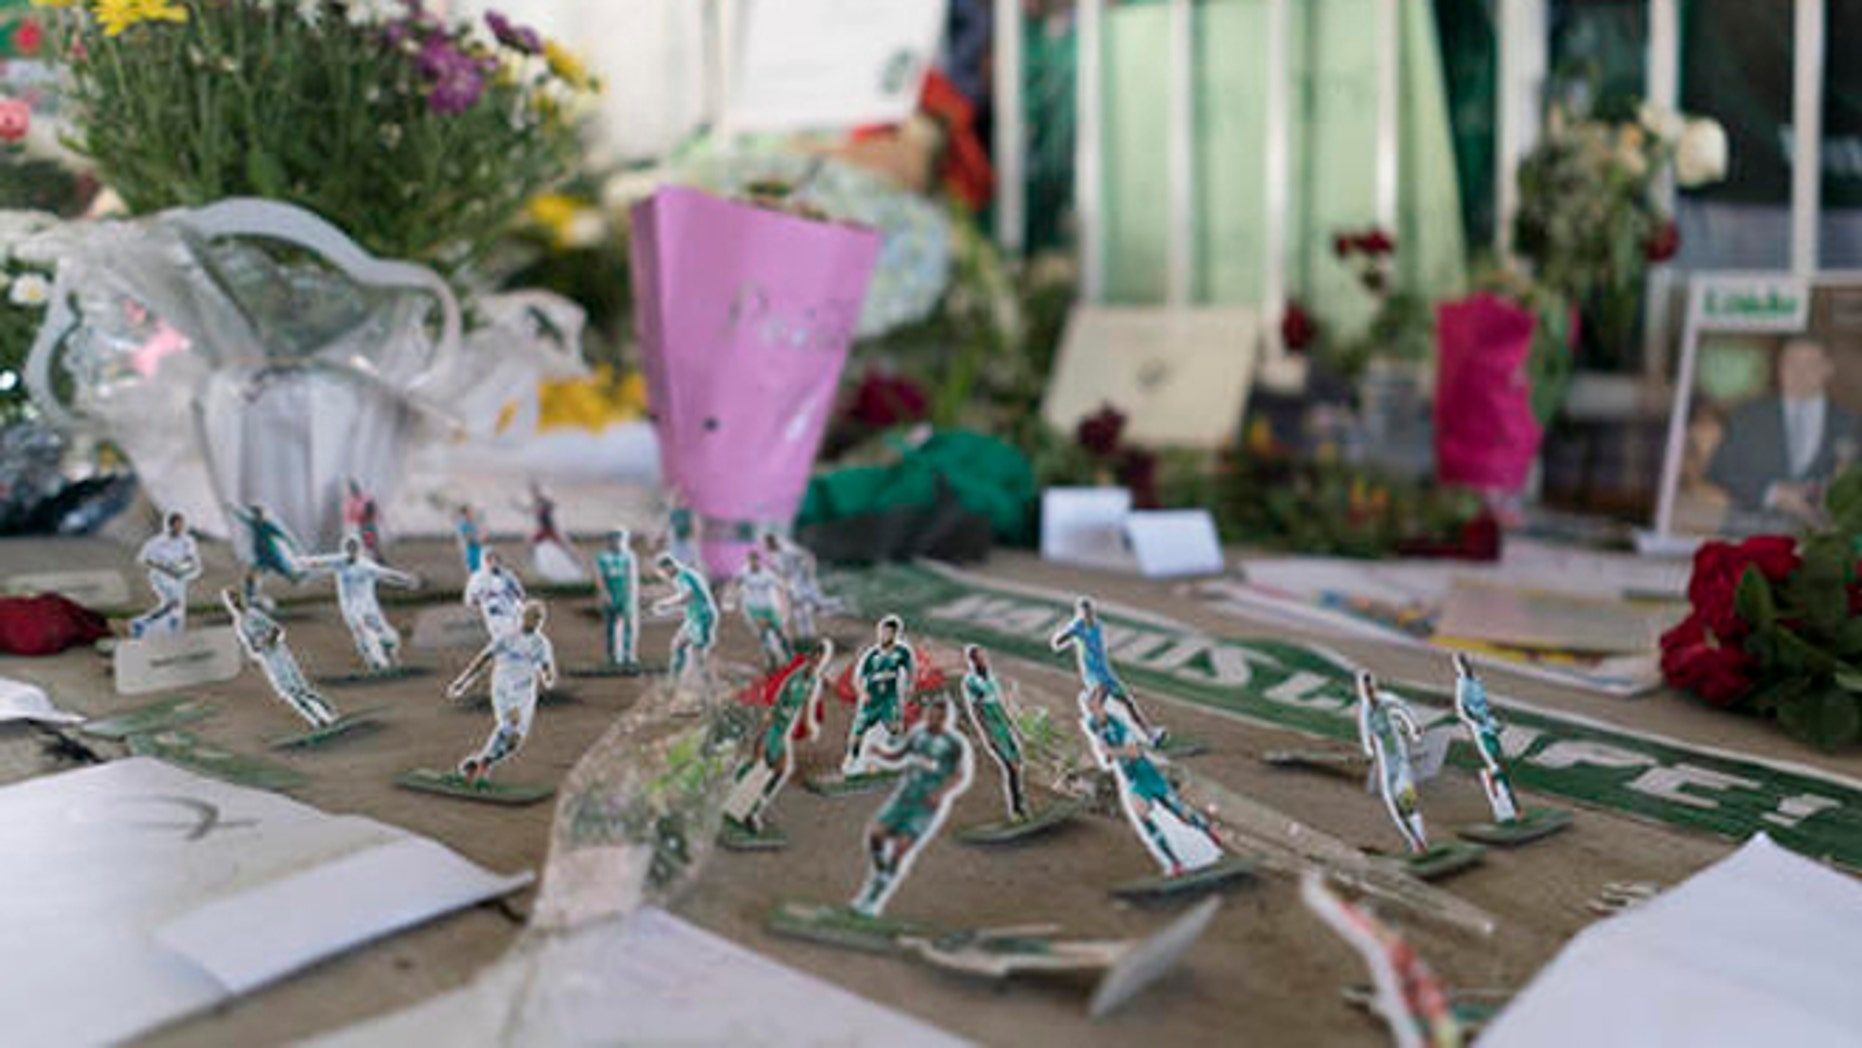 Miniature paper figures of Chapecoense soccer players adorn a makeshift memorial at the clubs stadium Conda Arena in Chapeco, Brazil, Friday, Dec. 2, 2016. The bodies of the Brazilian victims will be repatriated later Friday on three flights to Chapeco, the hometown of the Chapecoense Brazilian soccer team. Members of the team and a group of journalists who perished on the flight were headed to the Copa Sudamericana finals when the plane ran out of fuel, crashing into the Andes outside Medellin.  (AP Photo/Renata Brito)